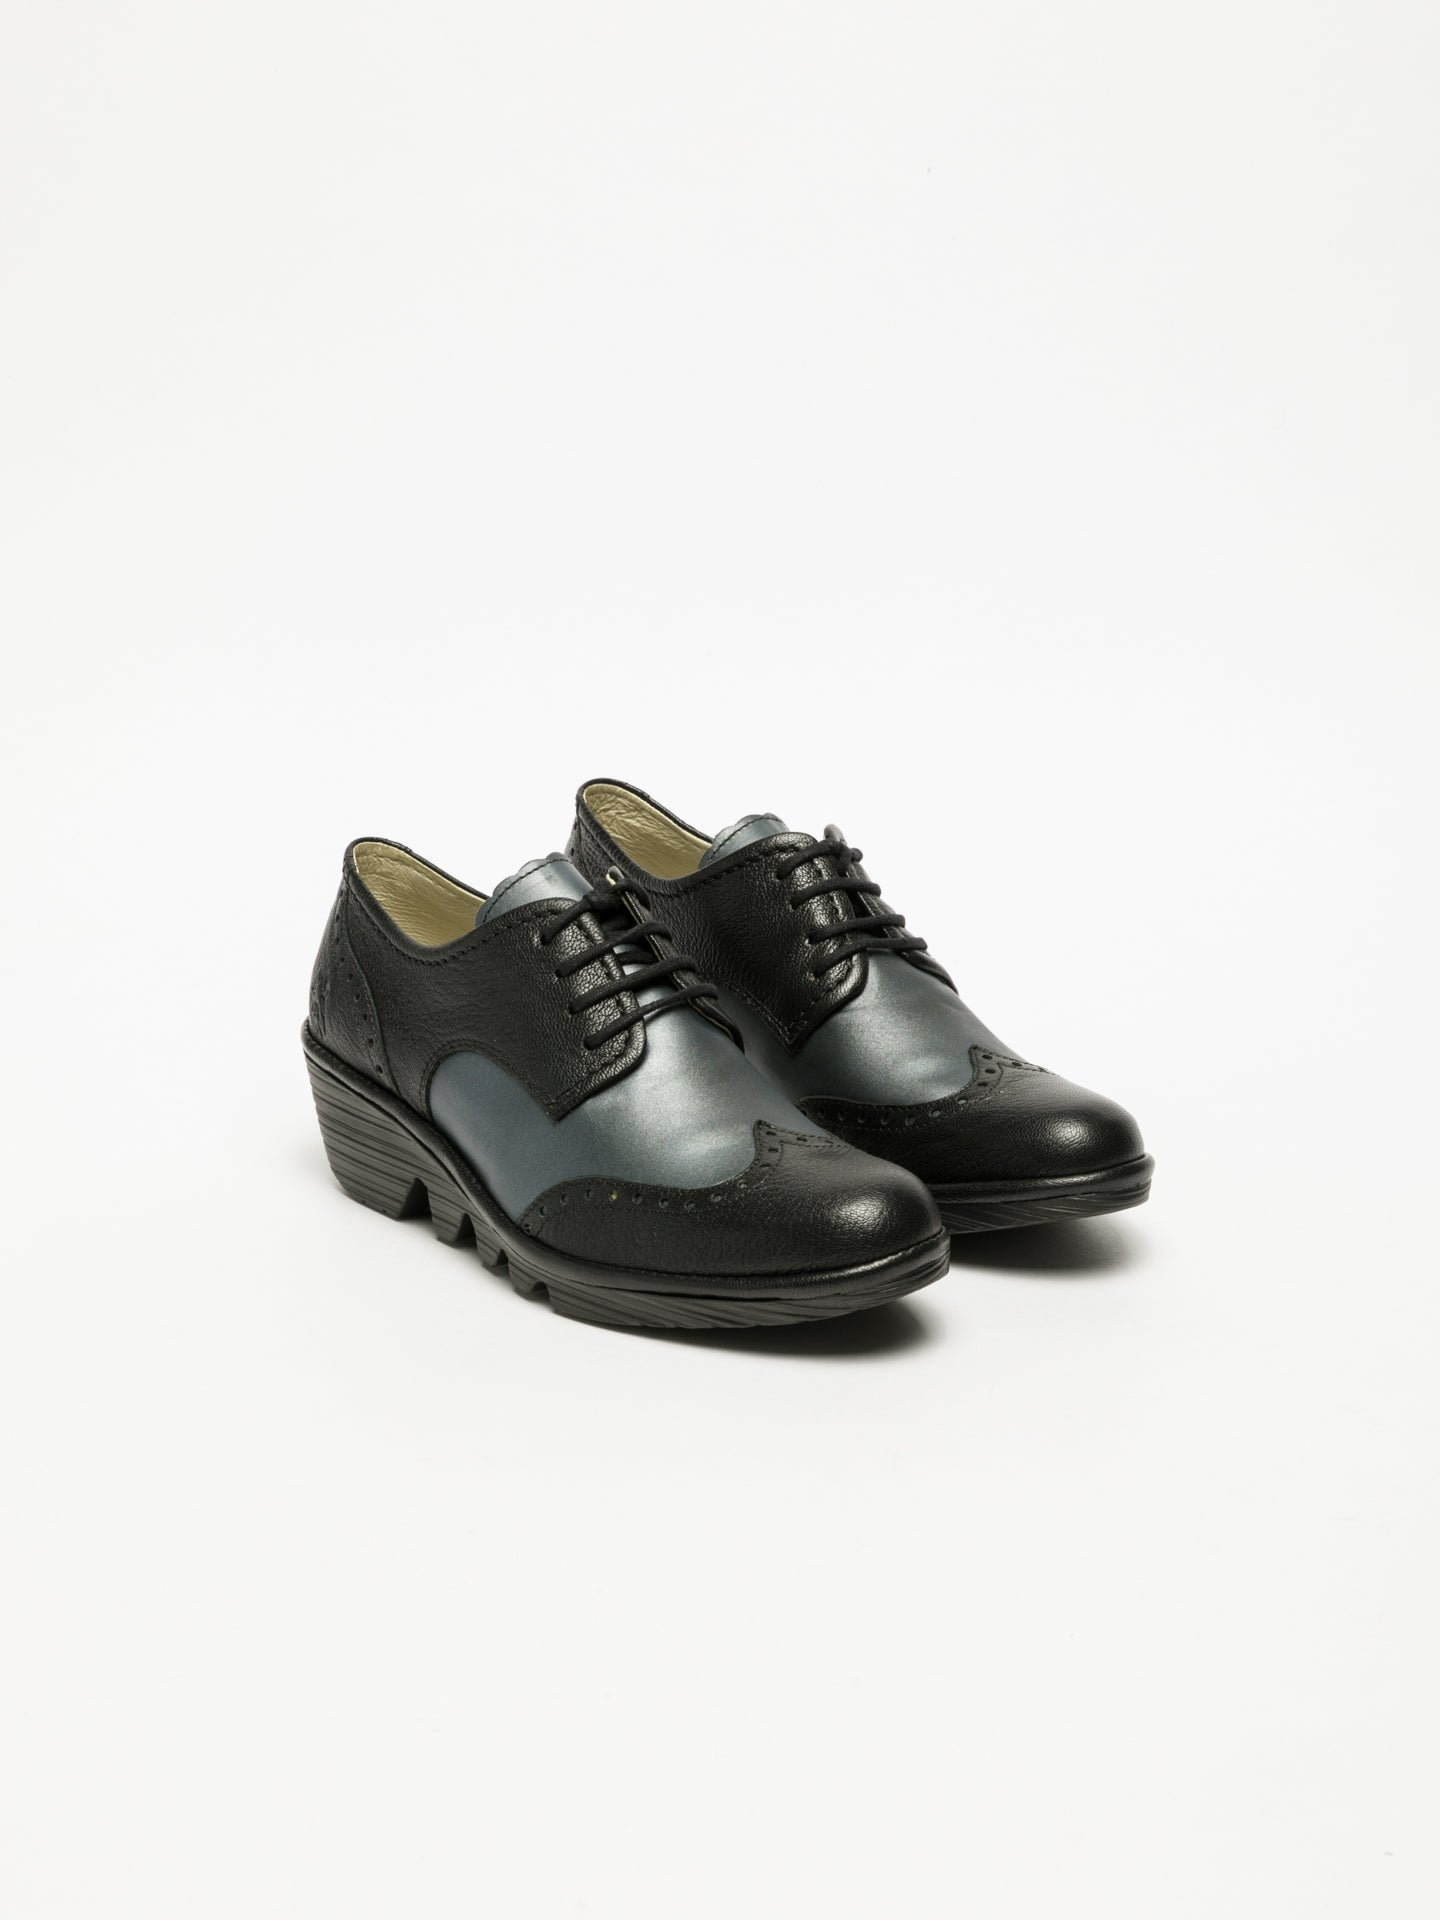 Fly London Matte Black Derby Shoes